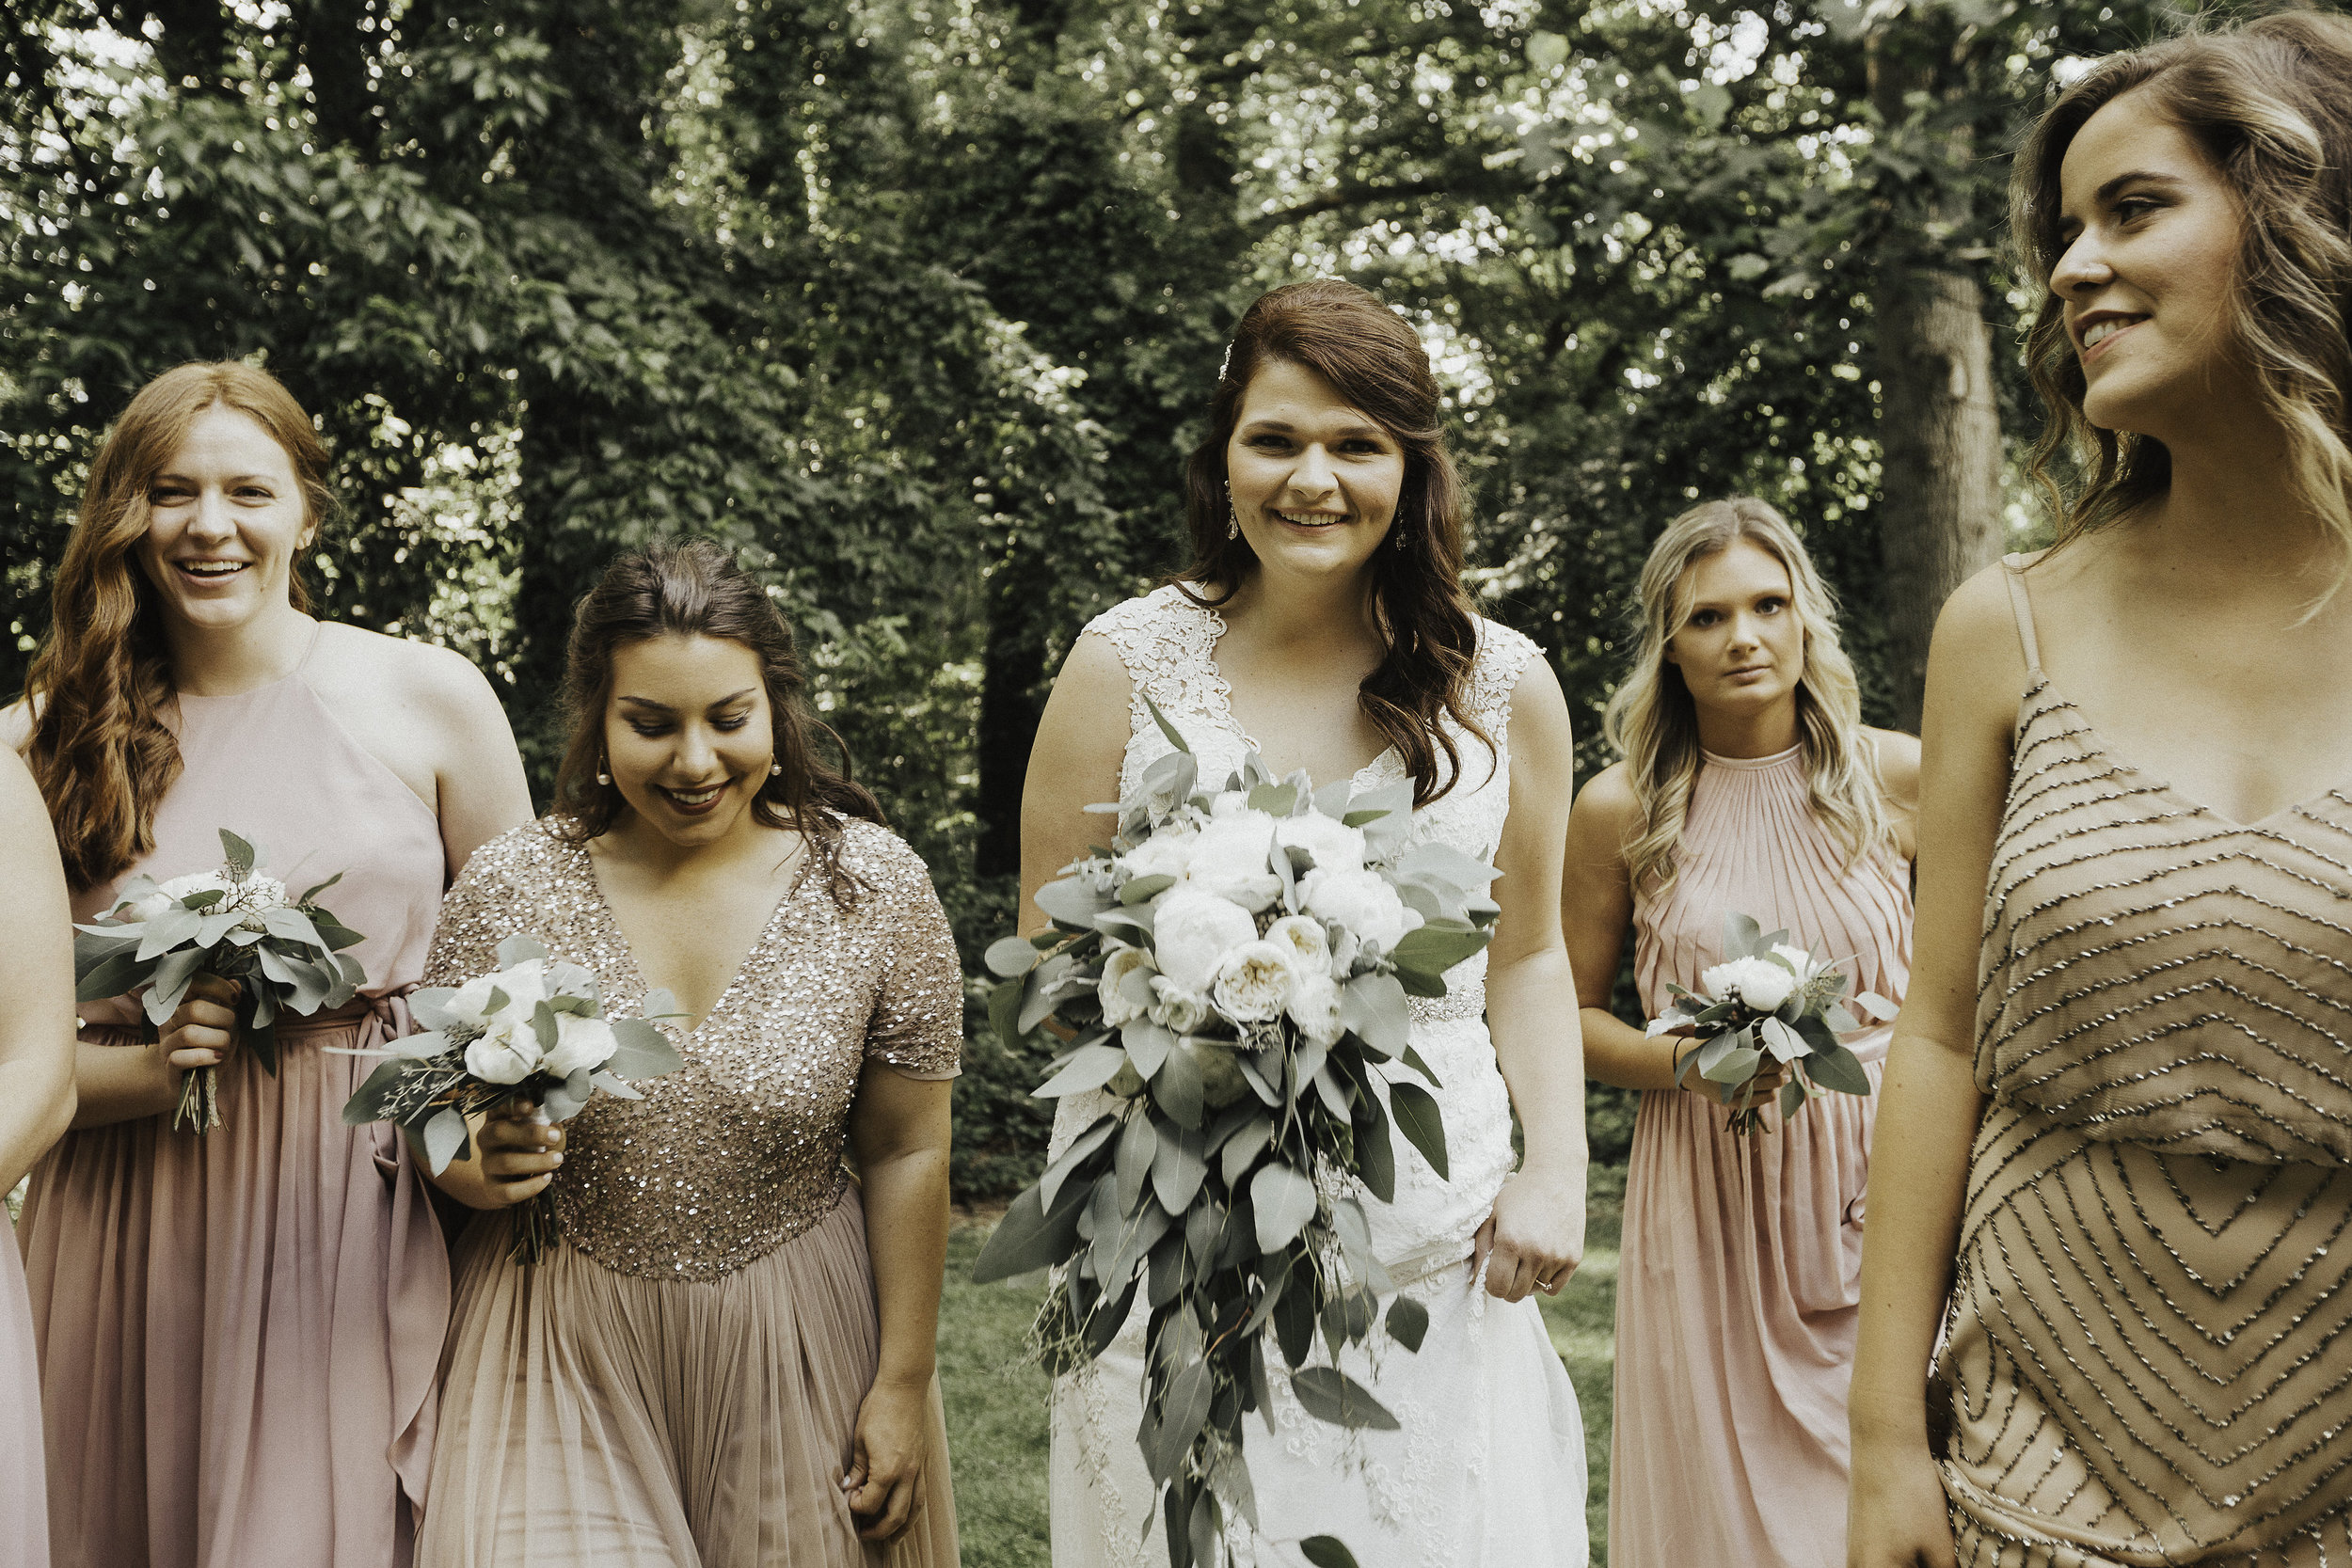 Stacey & Matt - Photography by Ashley Sue Photography